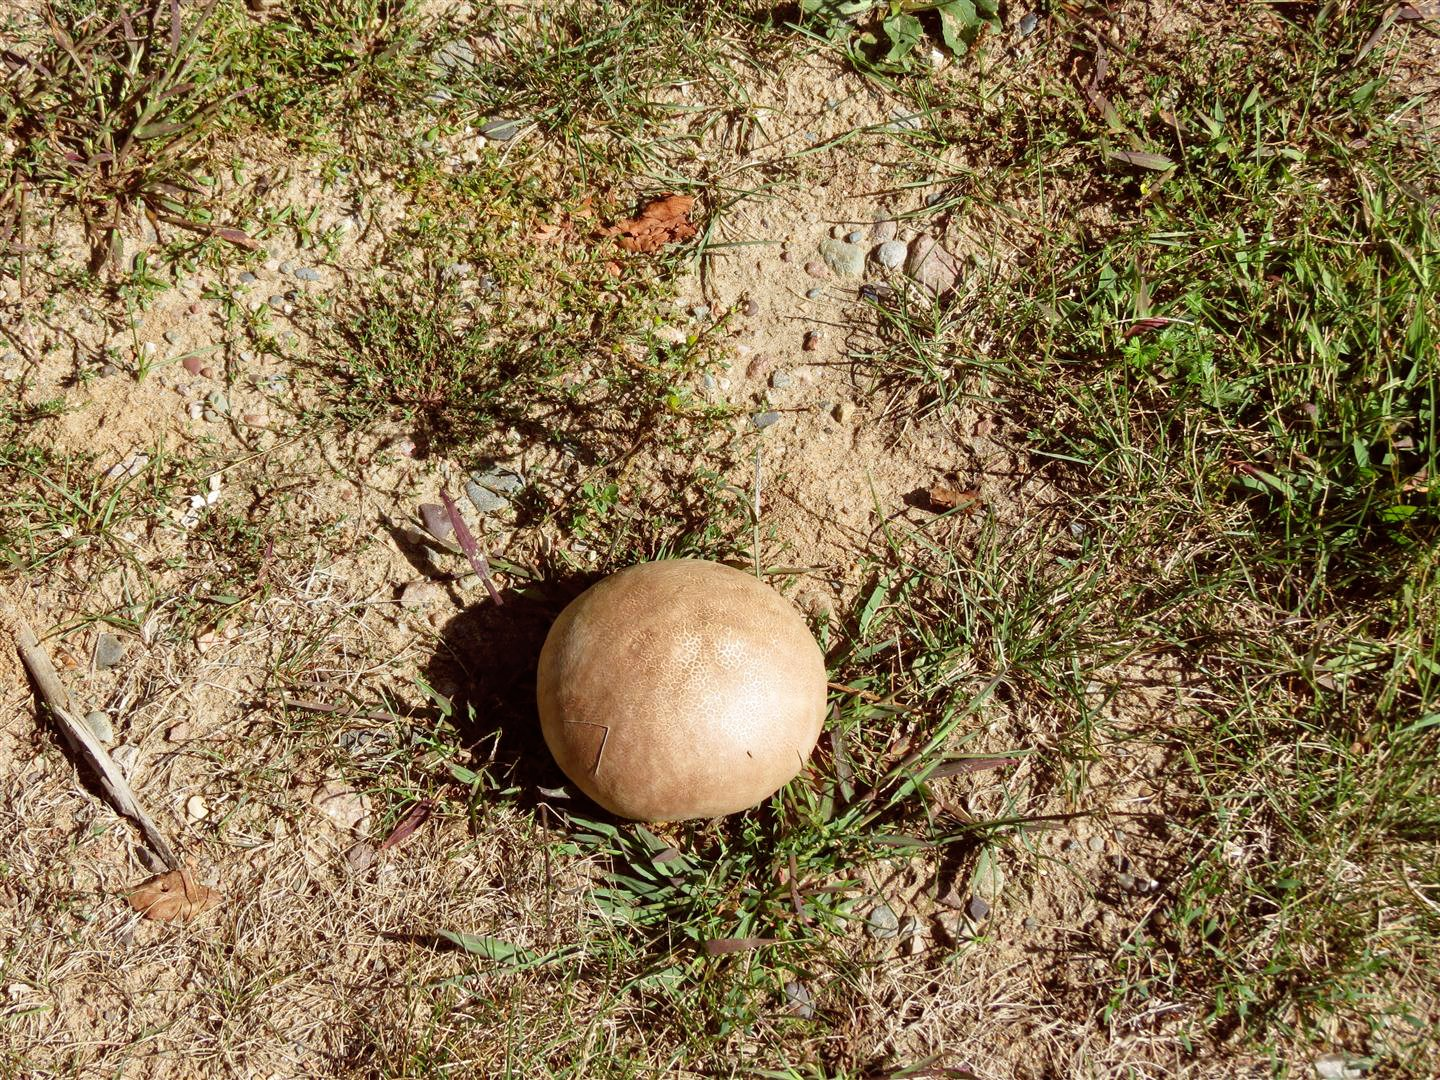 first this huge mushroom in the driveway which we were letting grow